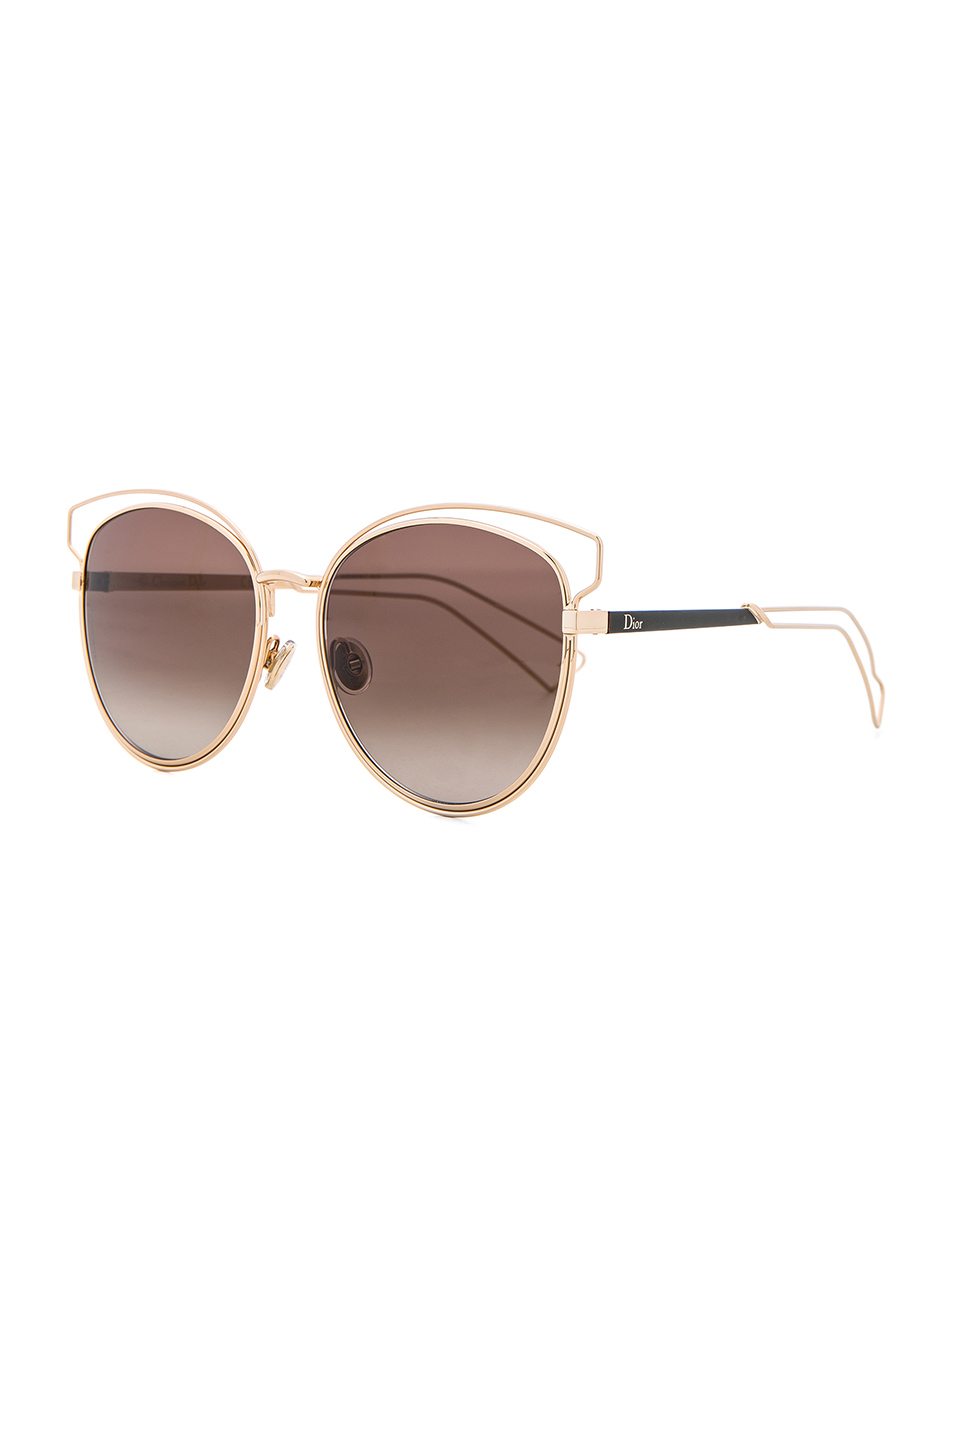 434f98acae5d Buy Original Dior Sider Sunglasses at Indonesia